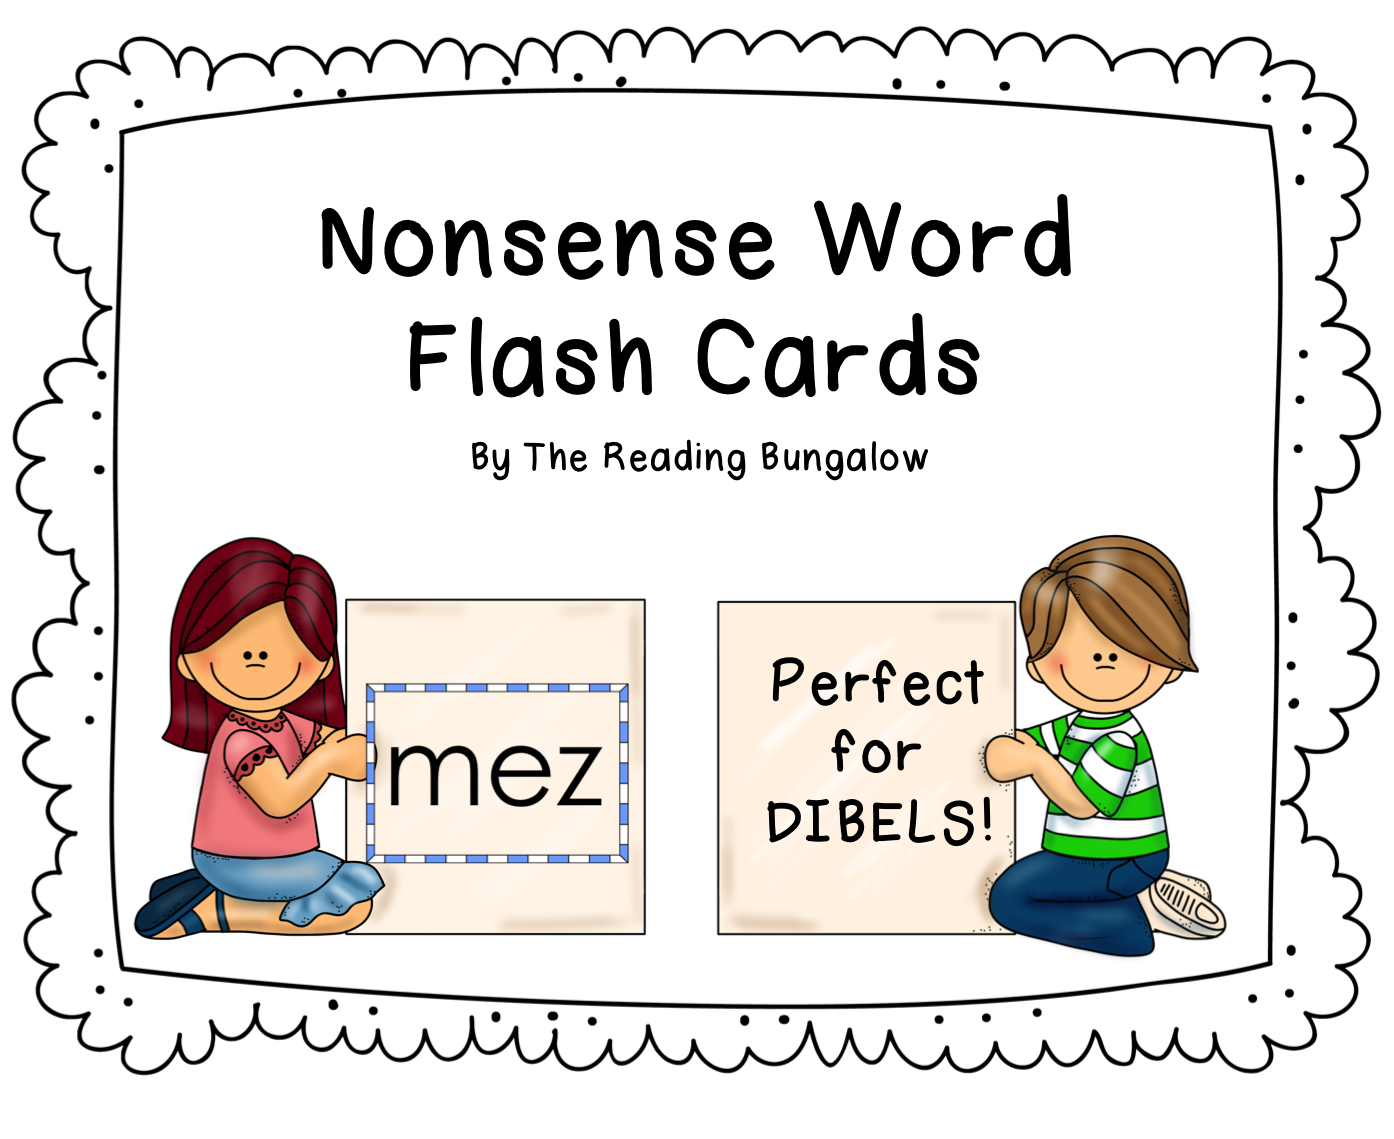 Nonsense Word Flash Cards Great For Dibels Or Aimsweb